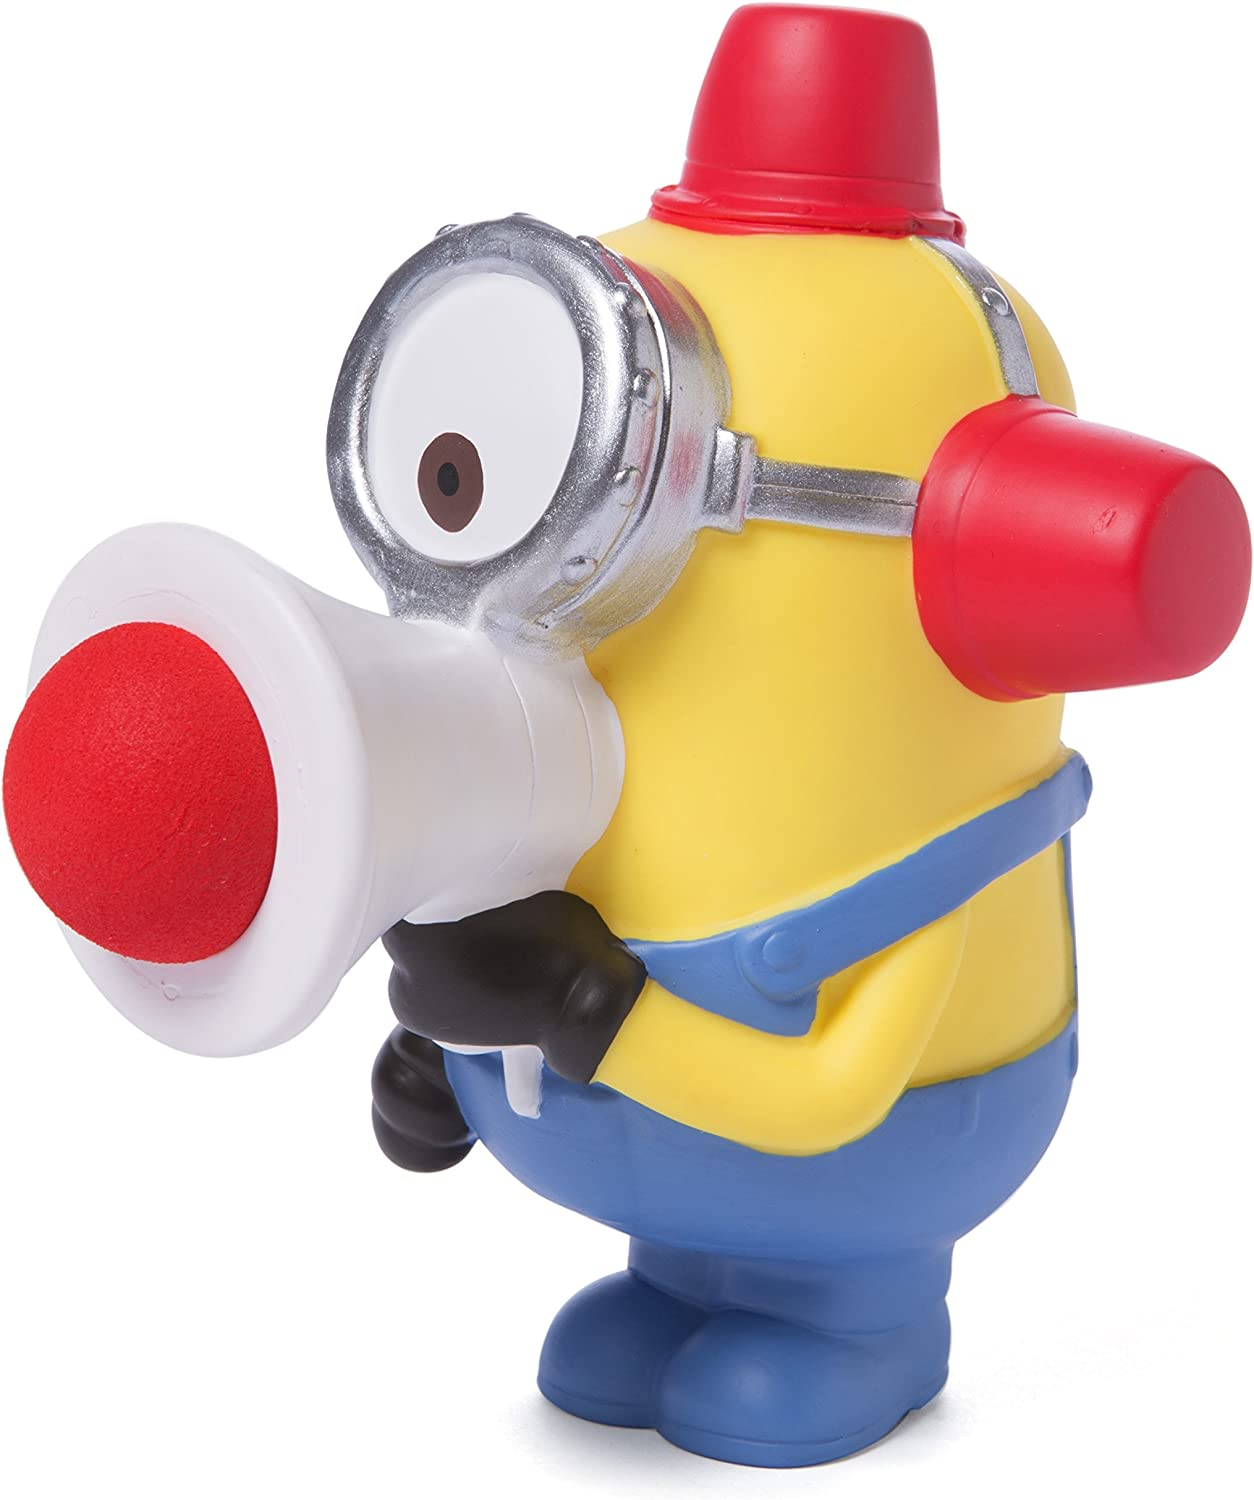 Hog Wild Minions Squeeze Poppers  Carl Toy